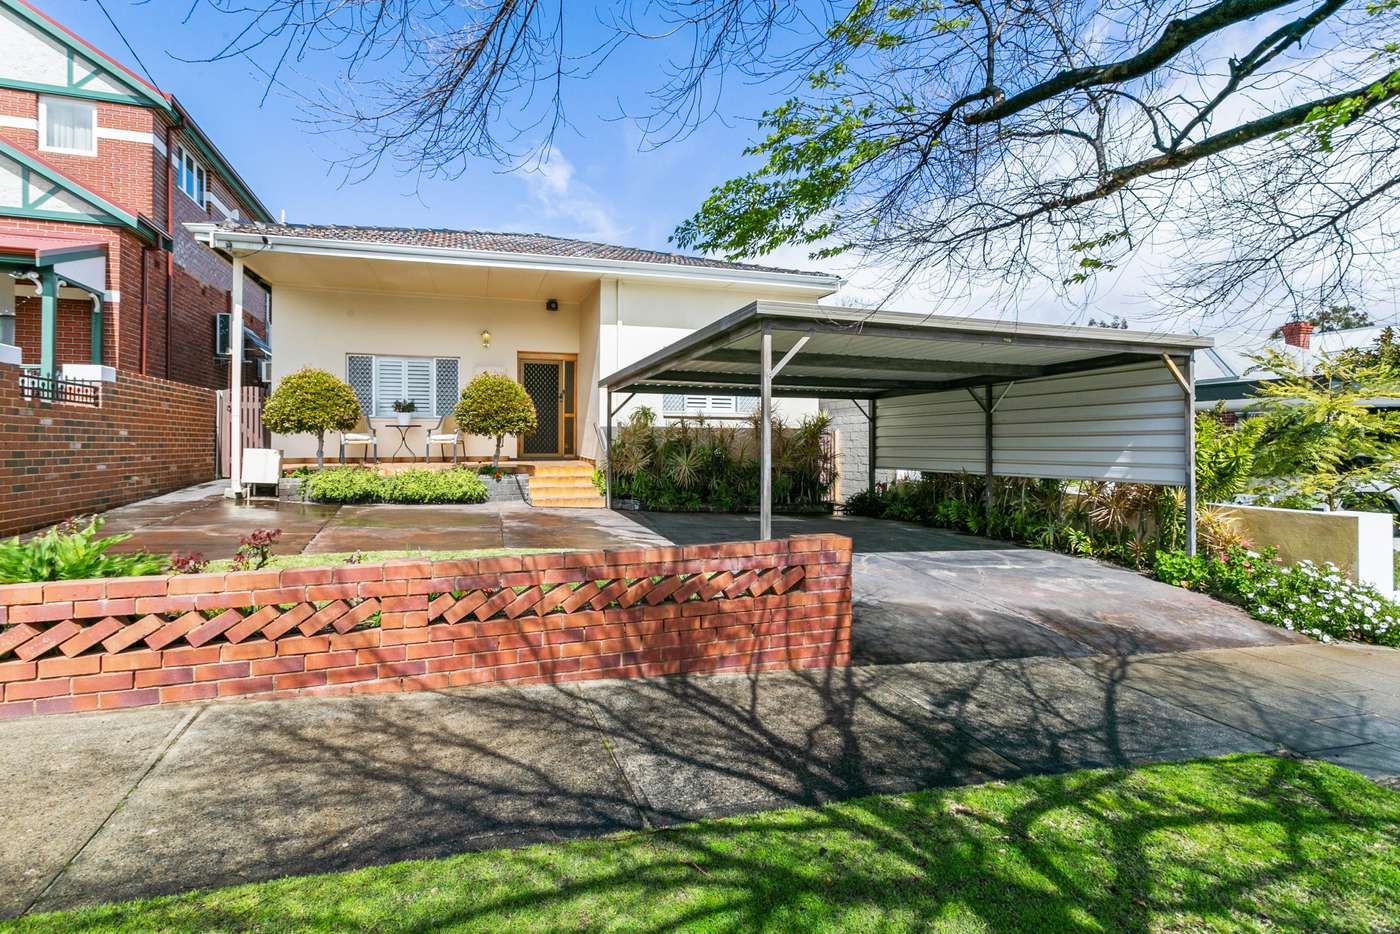 Main view of Homely house listing, 33 Ruby Street, North Perth WA 6006